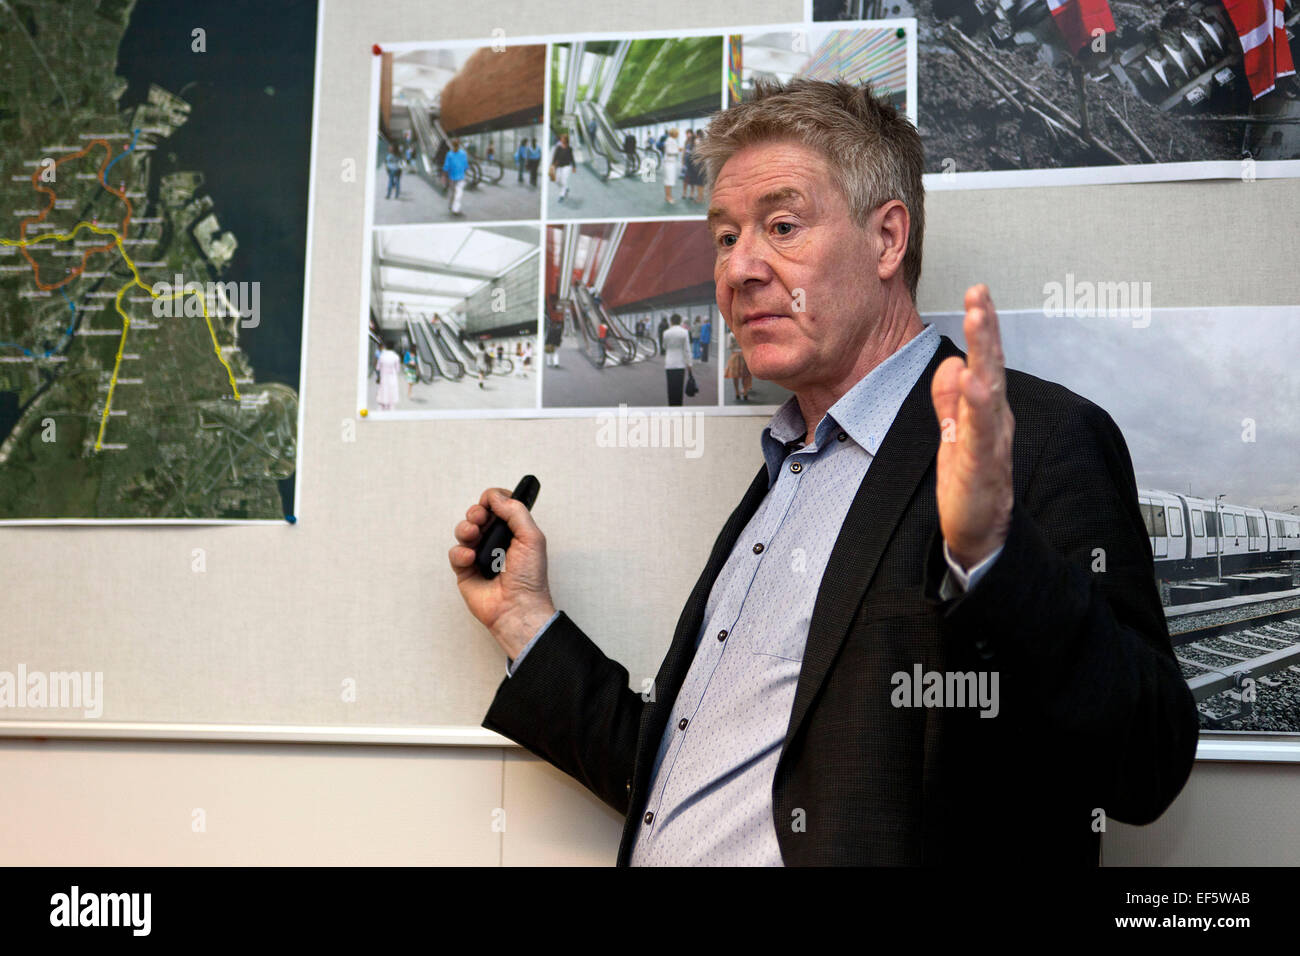 Copenhagen, Denmark, January 27, 2015: Guy Taylor, Project Director at Metroselskabet – the company operating the - Stock Image